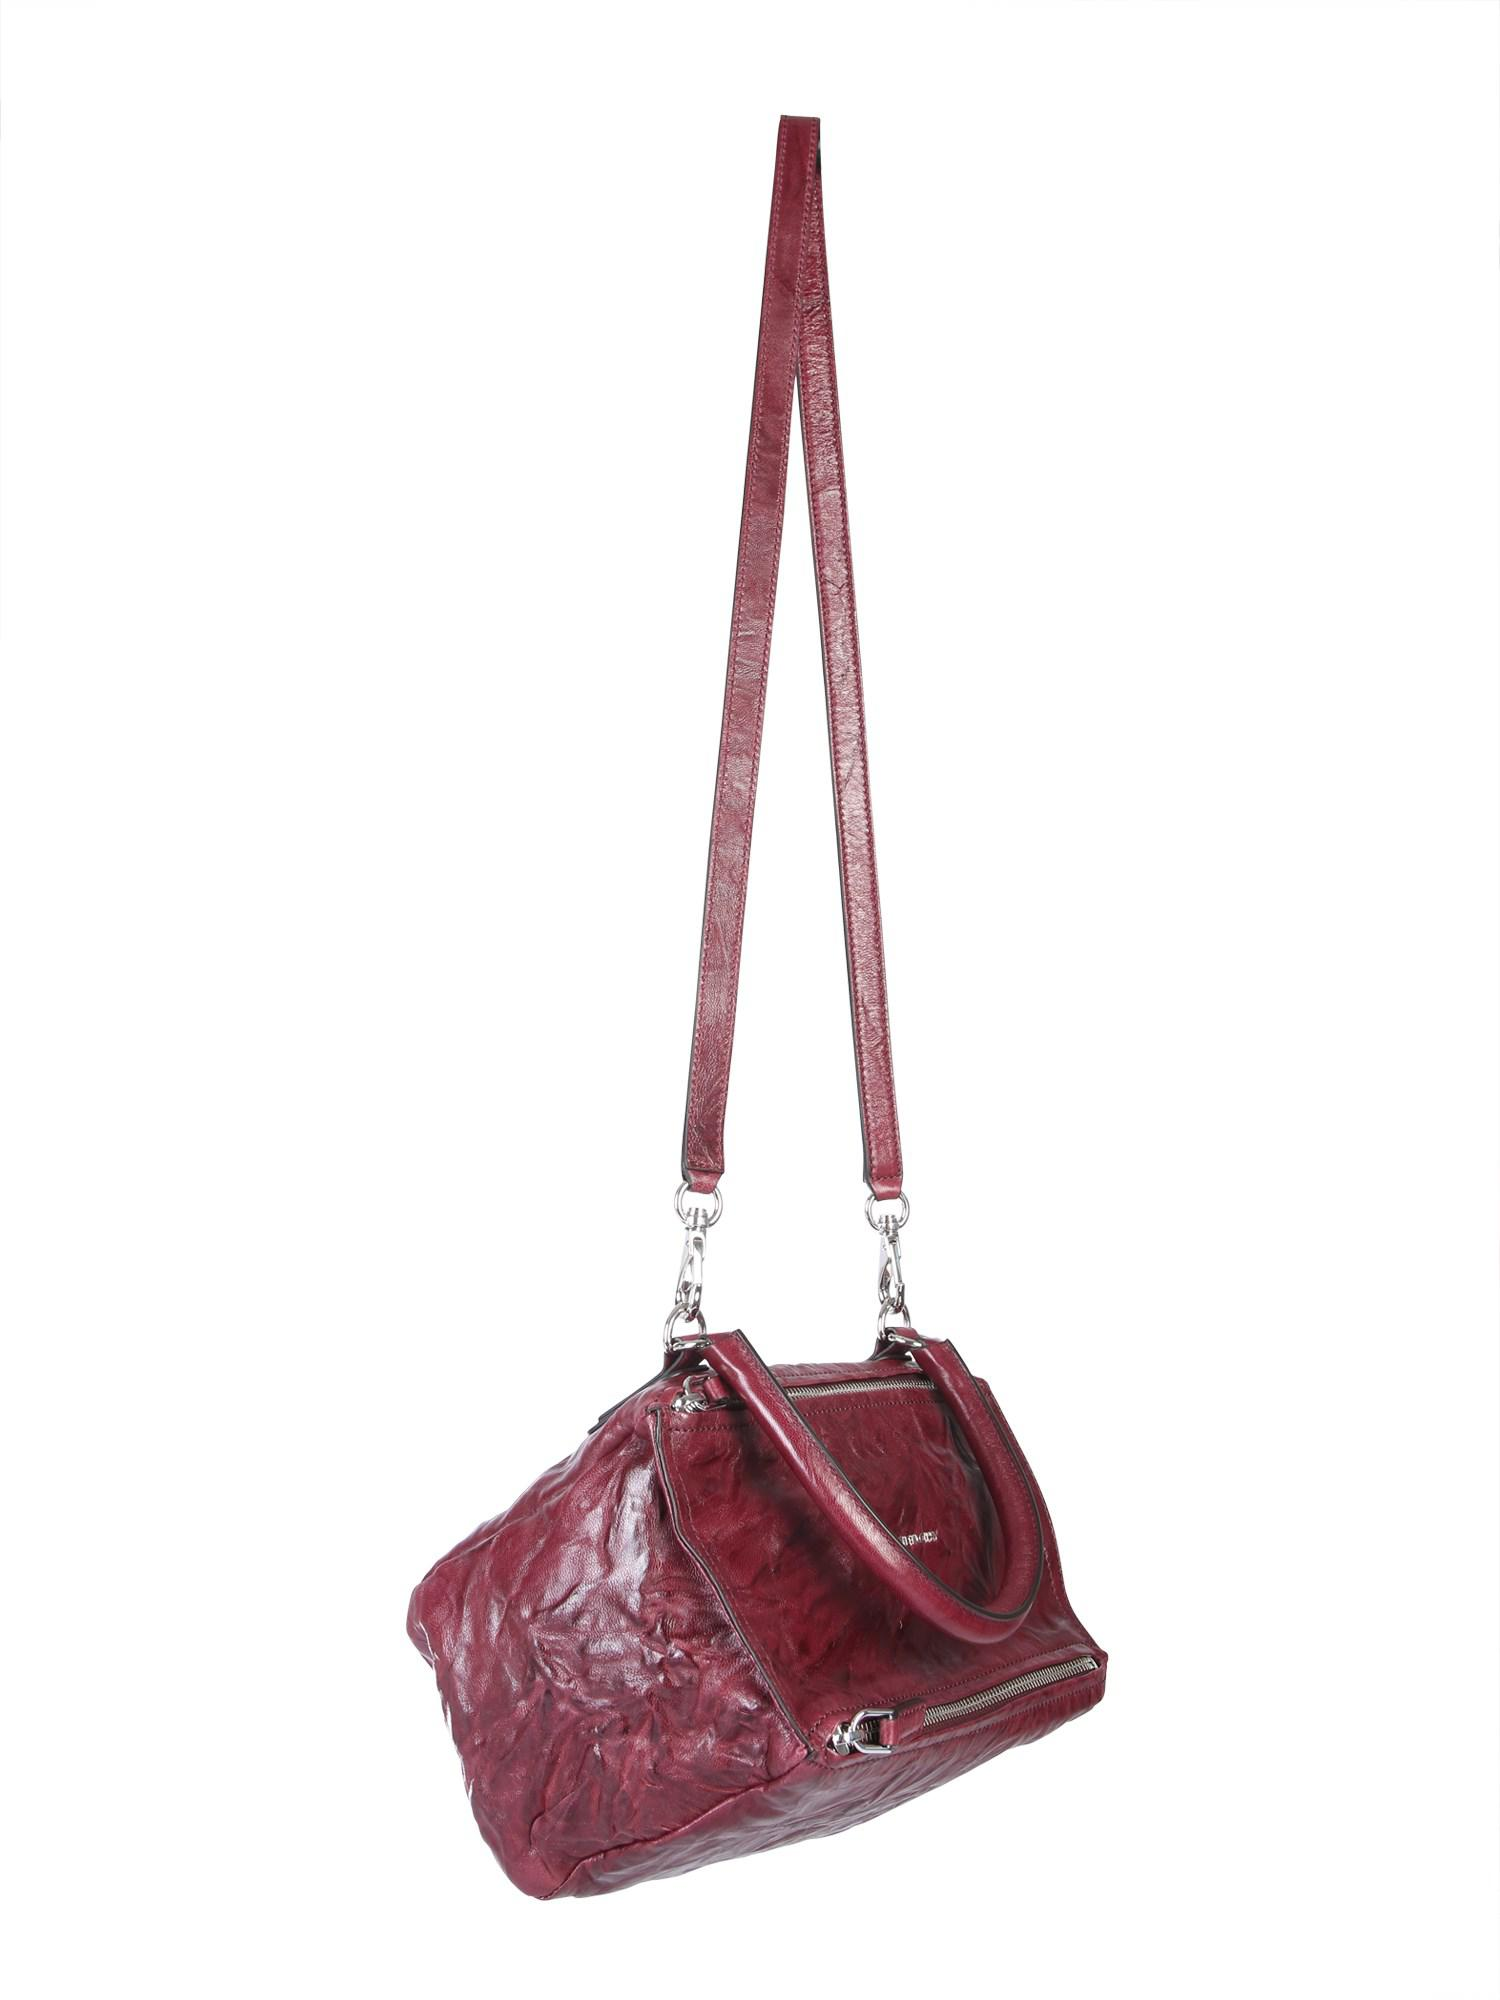 0eff3fbf255 Givenchy - Multicolor Small Pandora Bag In Aged Leather - Lyst. View  fullscreen